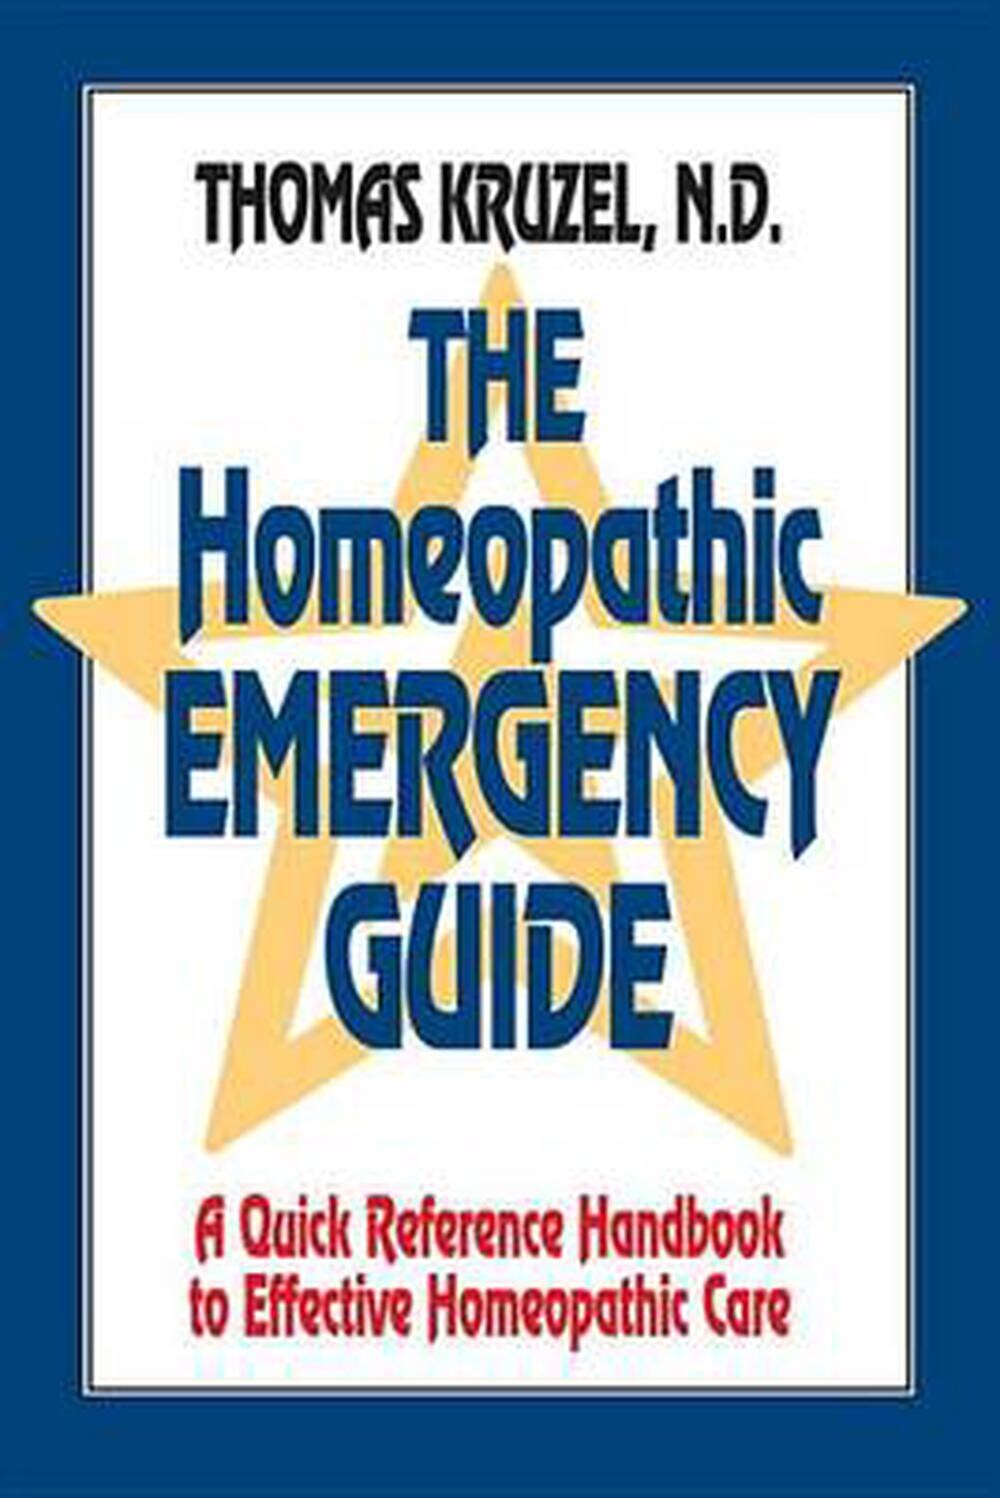 The homeopathic emergency guide*